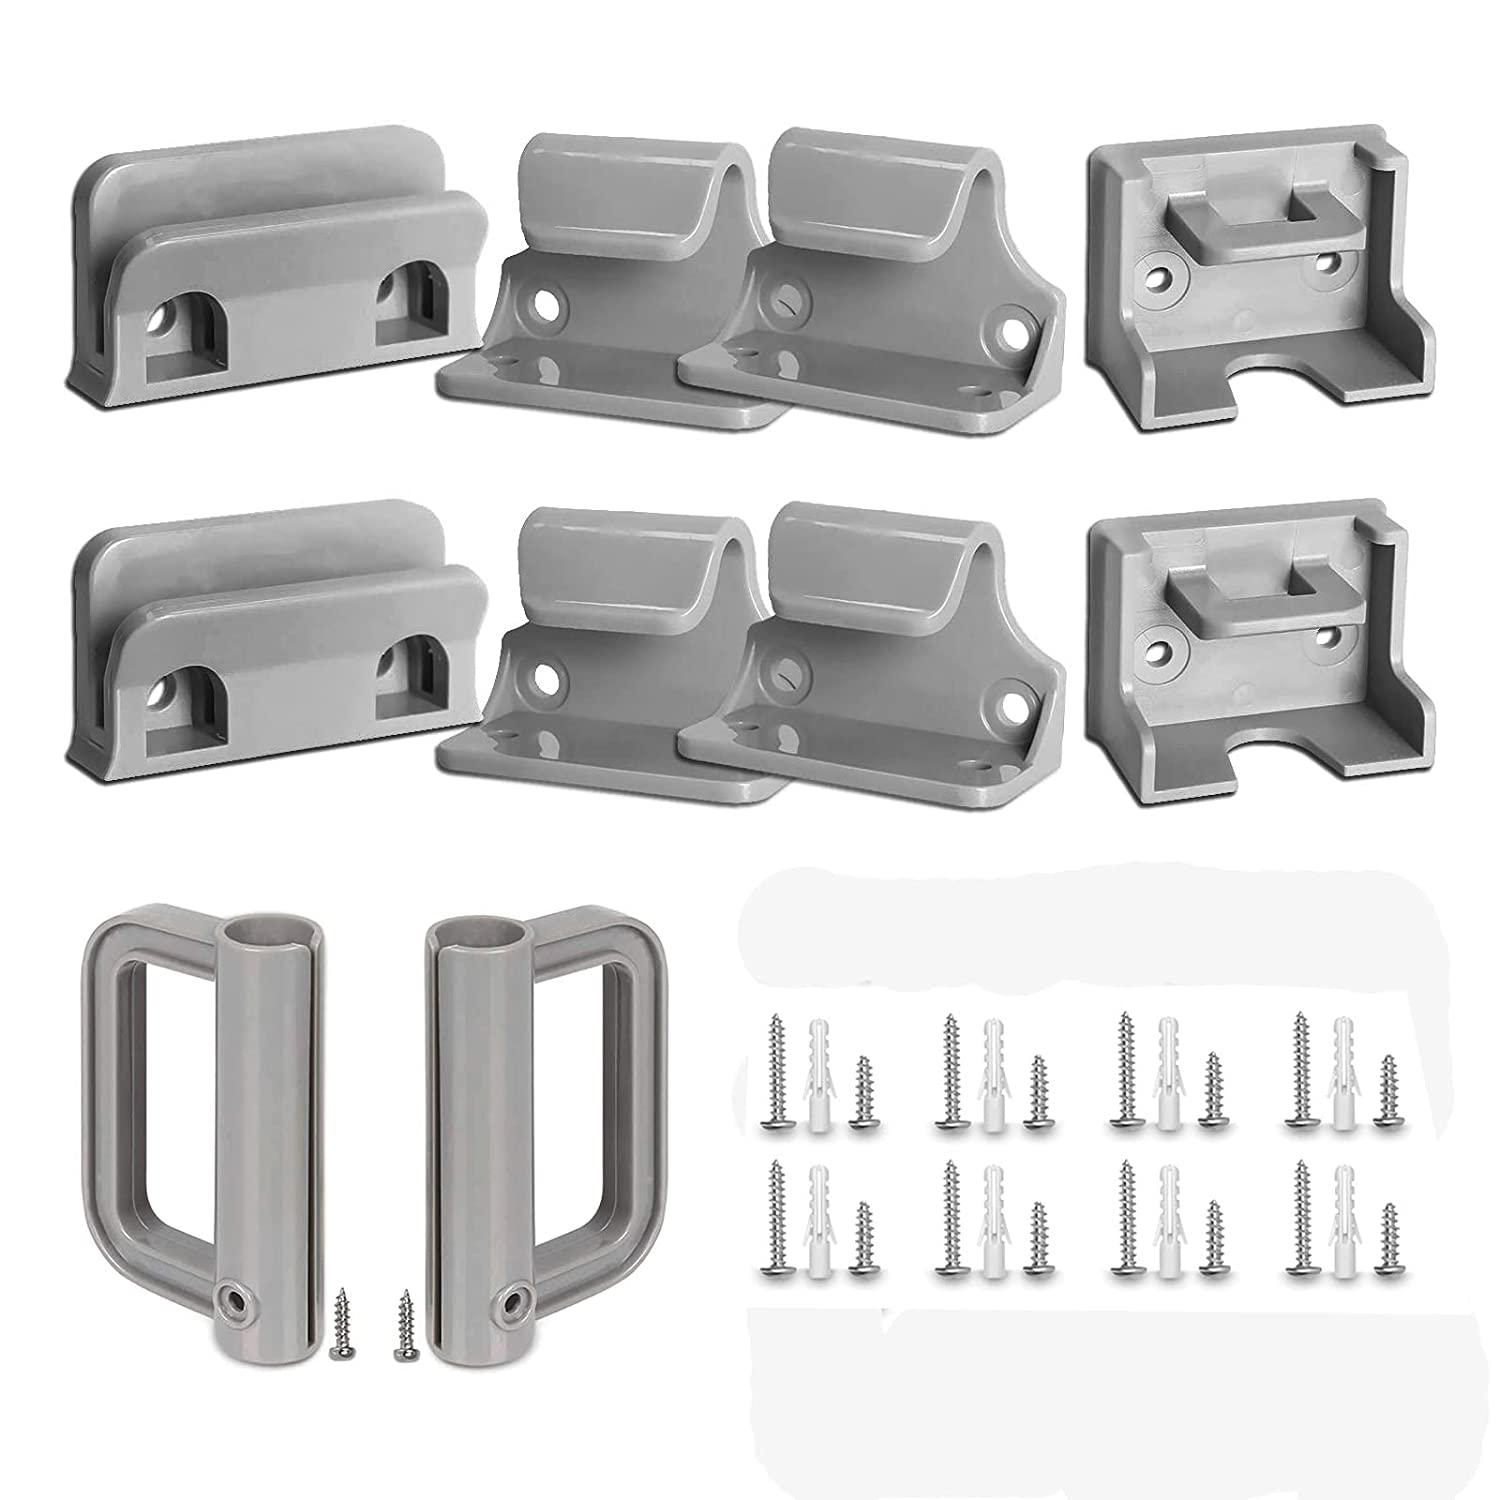 GRENFU Retractable Baby Gate Replacement Parts Kit Grey Pet Gate Full Set Wall Mounting Hardware with Brackets Anchors and Screws